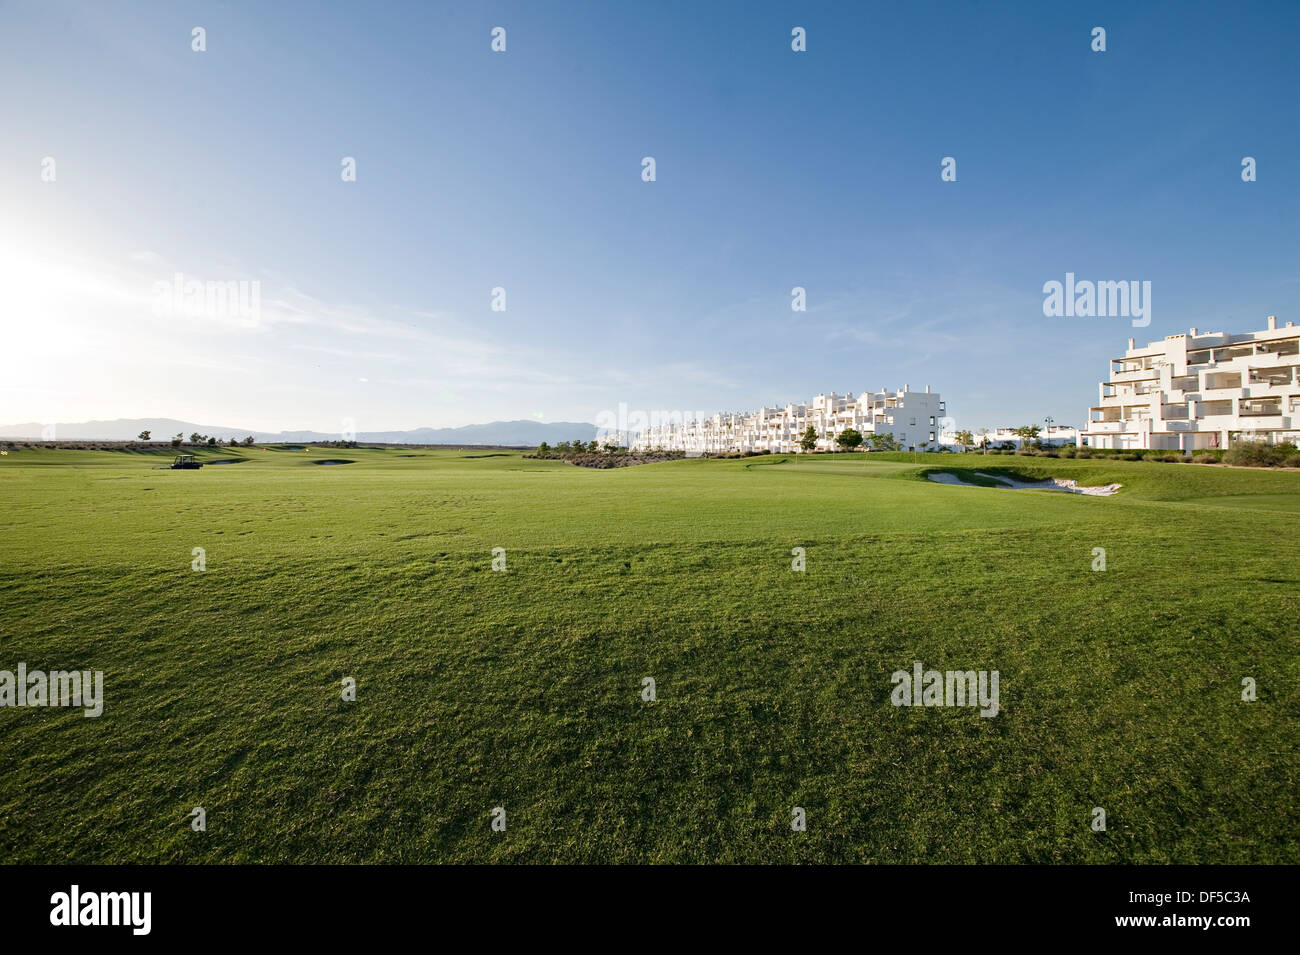 A Golf course from tee off green - Stock Image